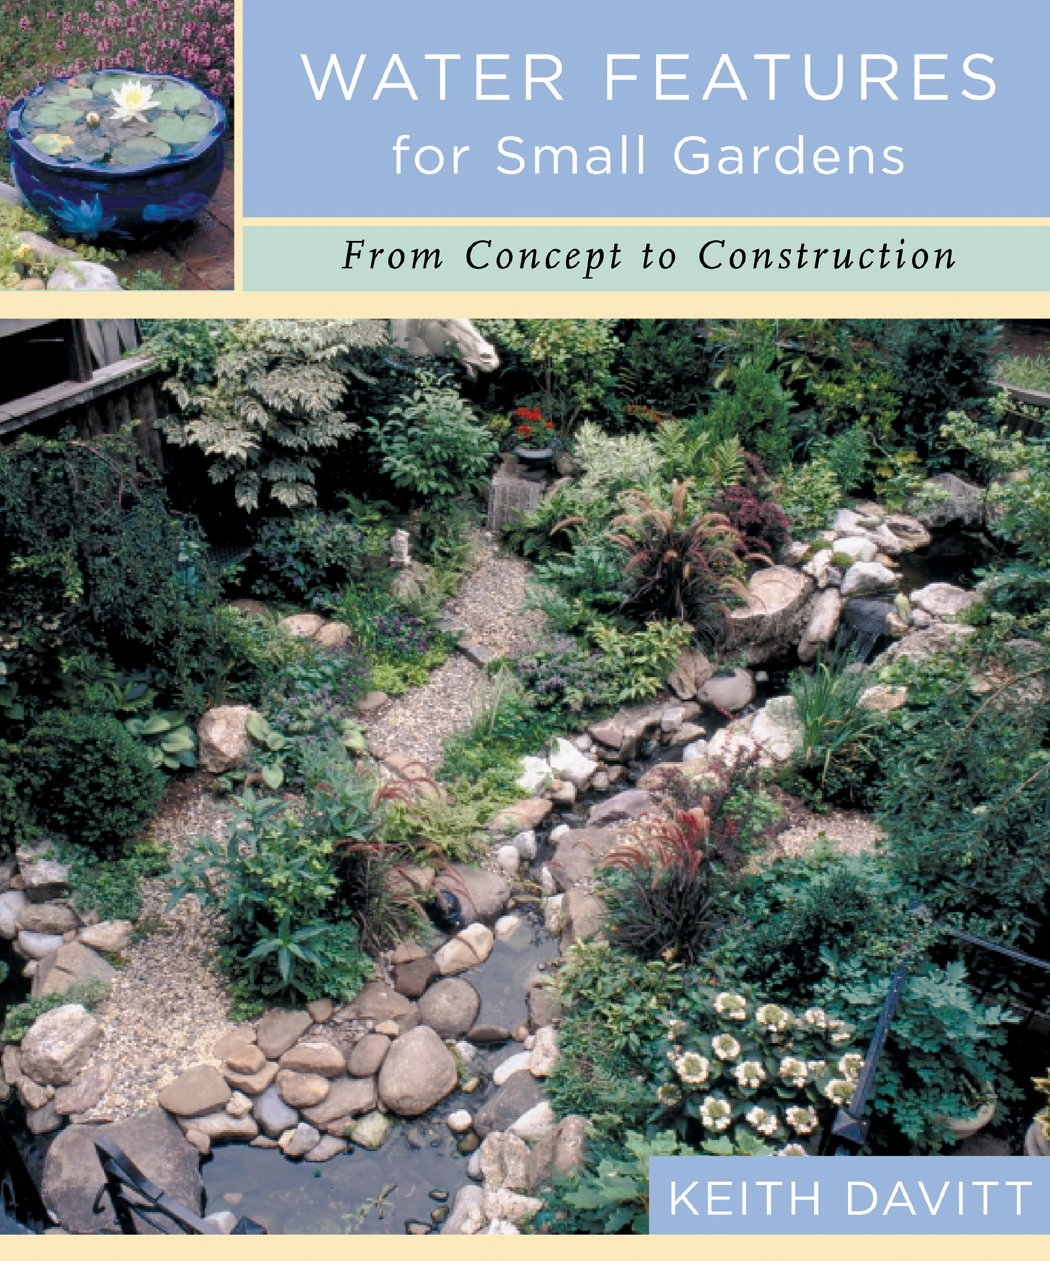 Water Features For Small Gardens: From Concept To Construction: Keith  Davitt: 0008819259695: Amazon.com: Books